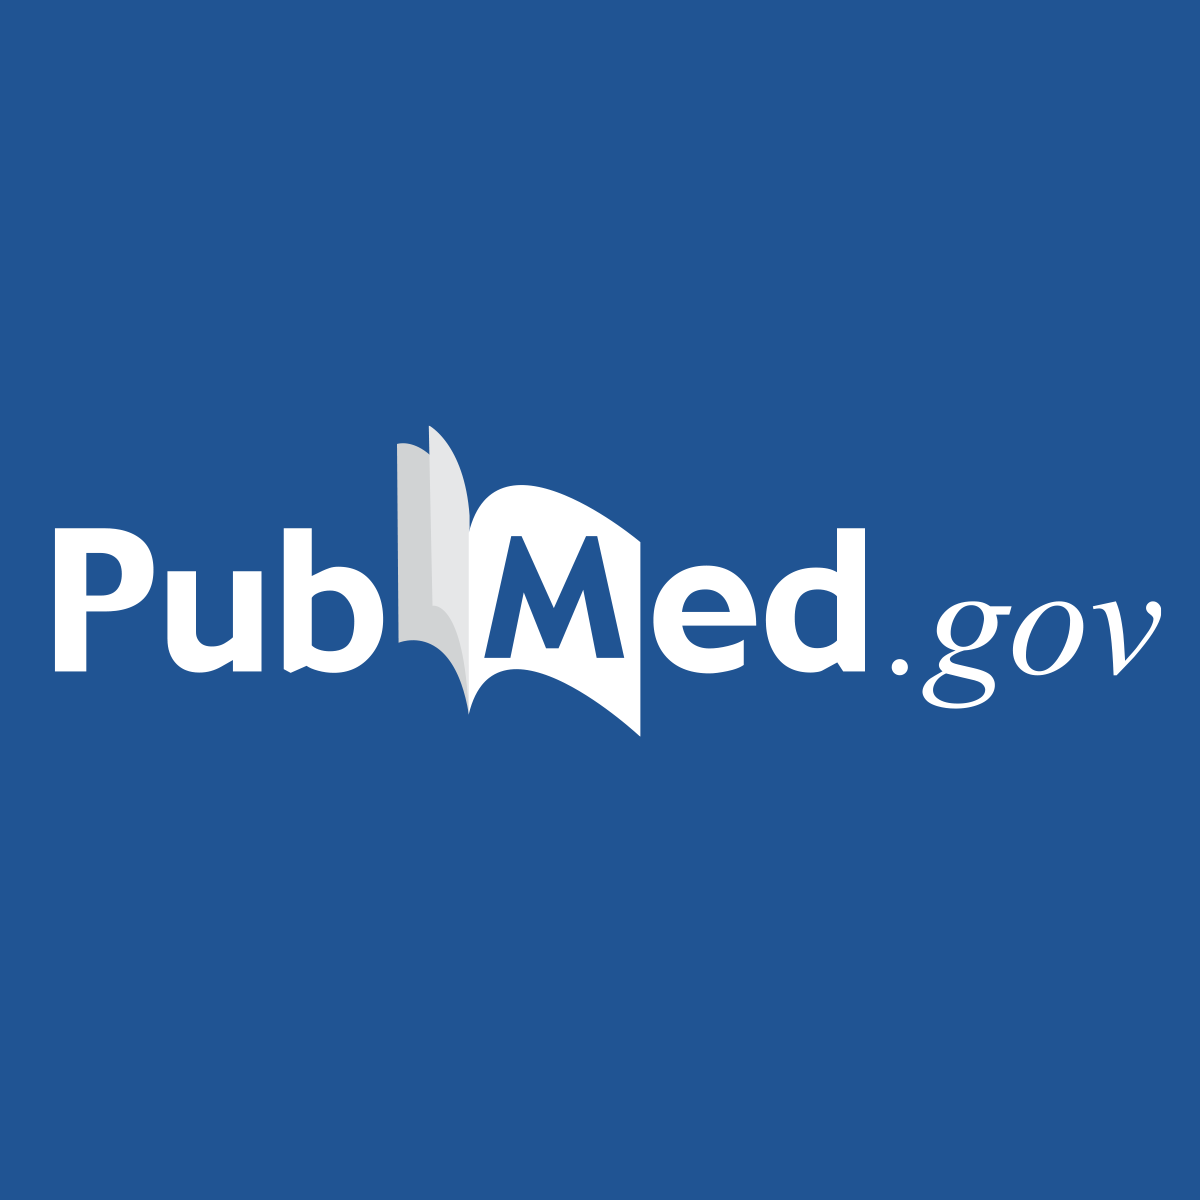 Use of Dipeptidyl Peptidase-4 inhibitors and prognosis of COVID-19 in hospitalized patients with type 2 diabetes: a propensity score analysis from the CORONADO study - PubMed